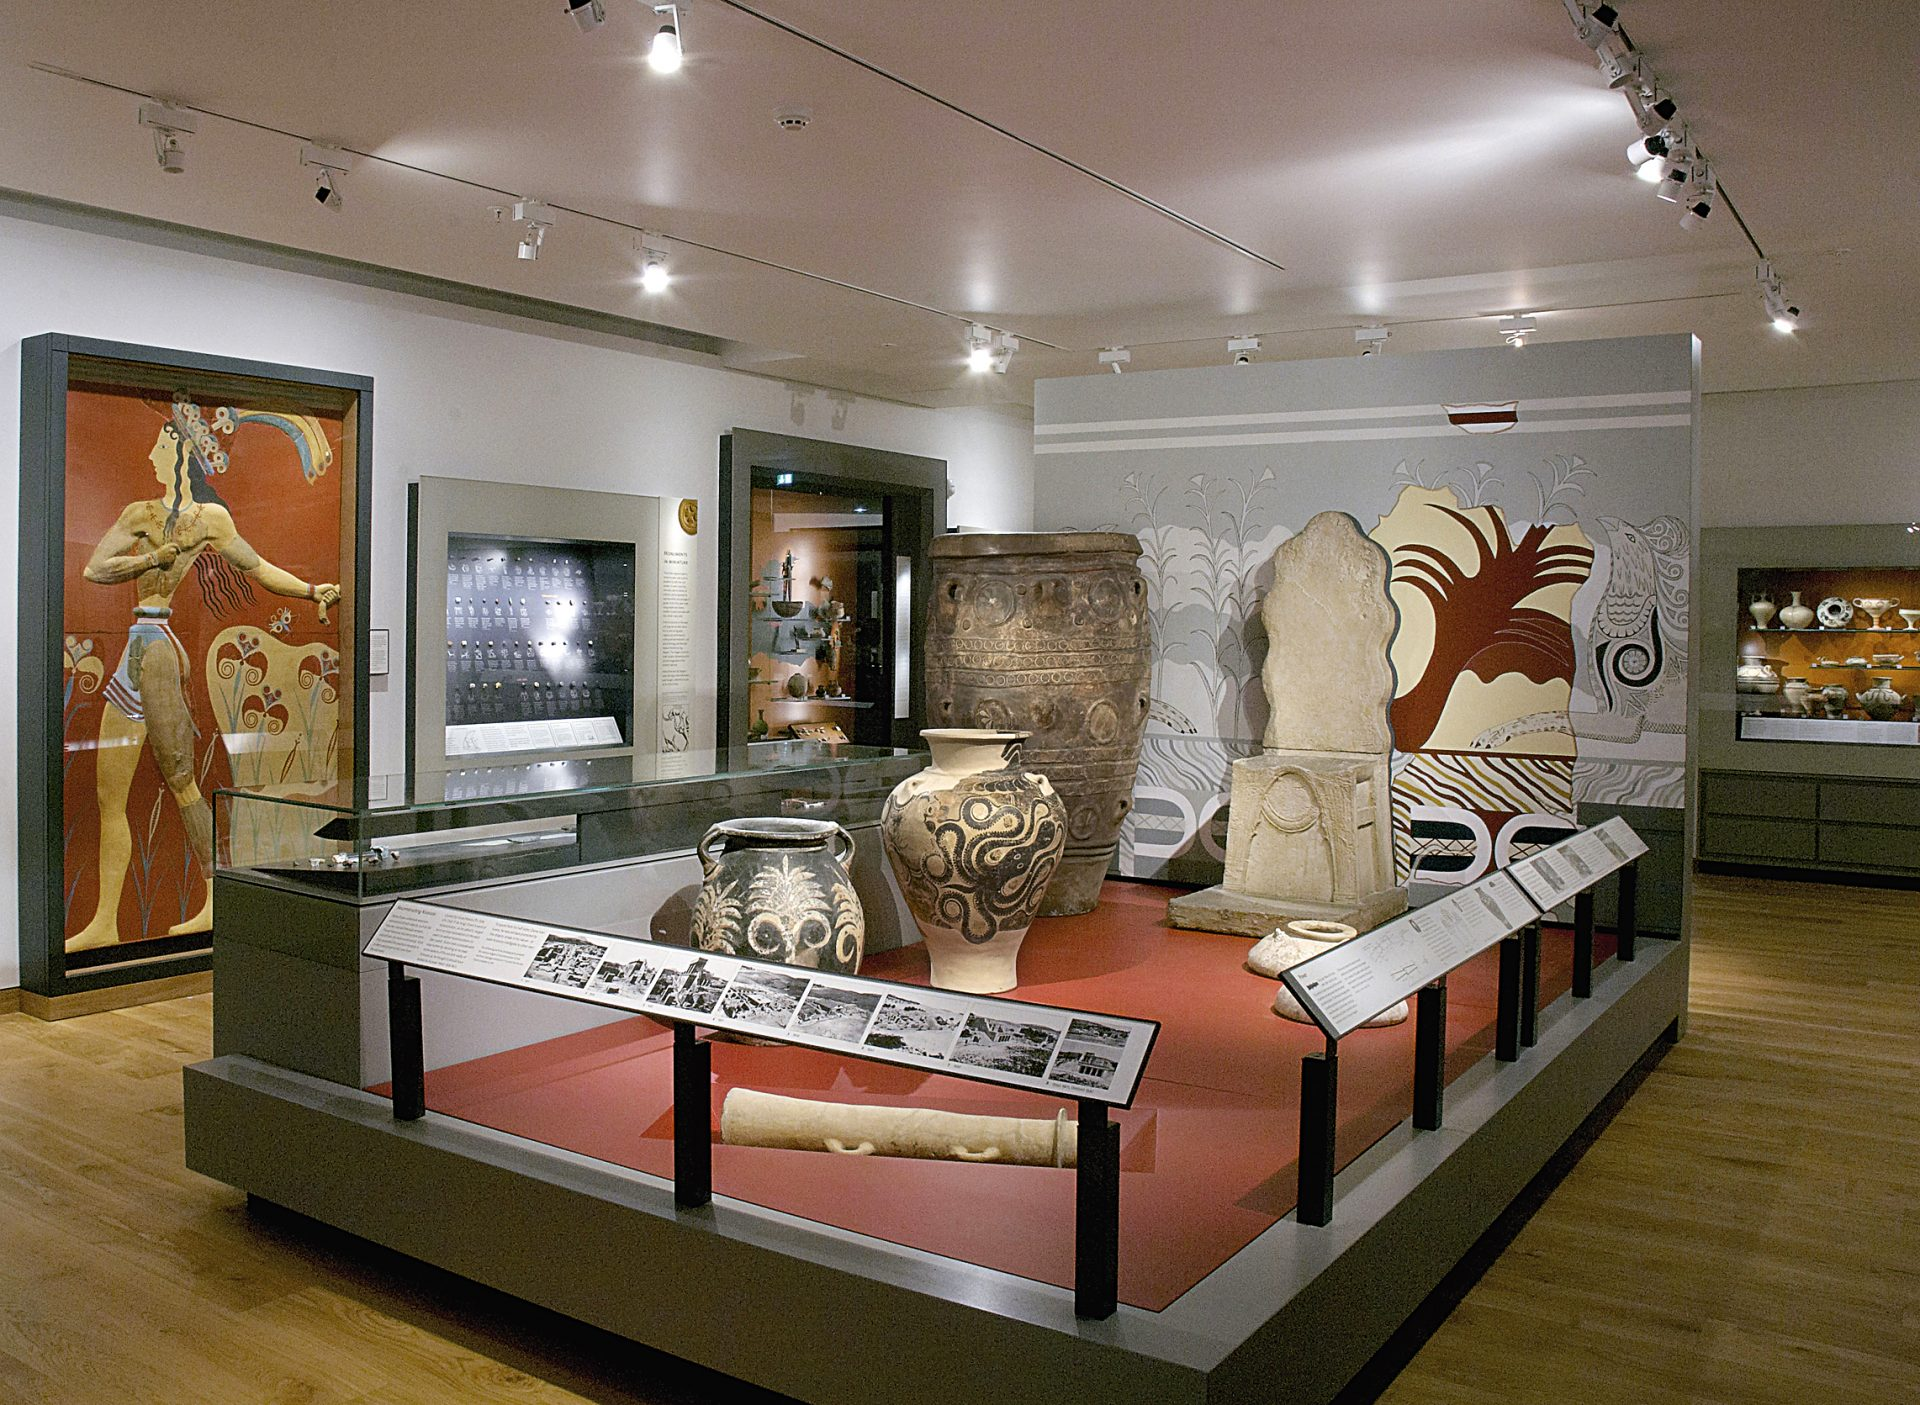 The Aegean World | A Guide to the Cycladic, Minoan and Mycenaean Antiquities in the  Ashmolean Museum